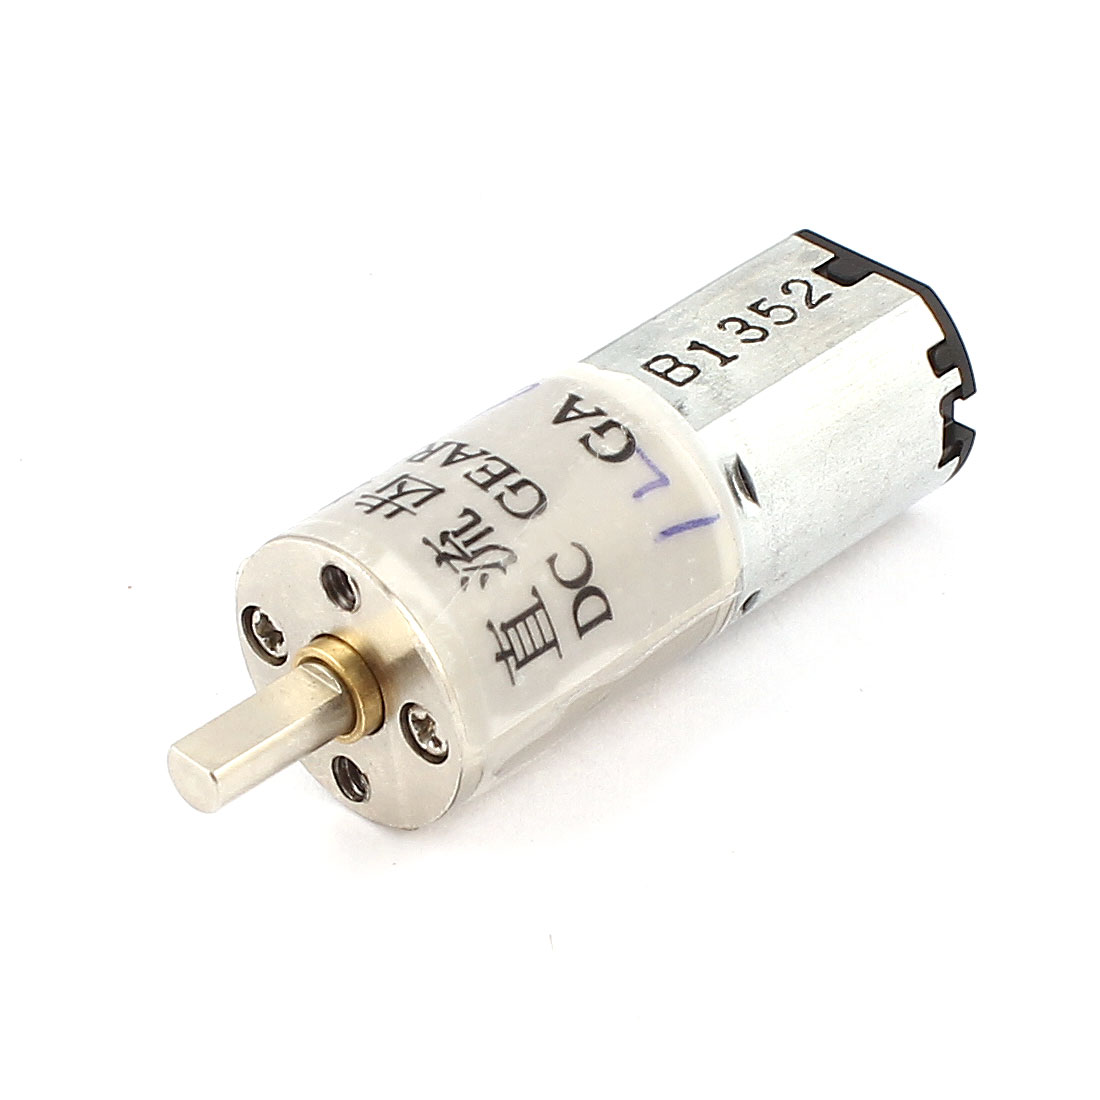 DC 6V 120RPM 3mm Diameter D Shaft Cylinder Electric Gearbox Speed Reducing Motor